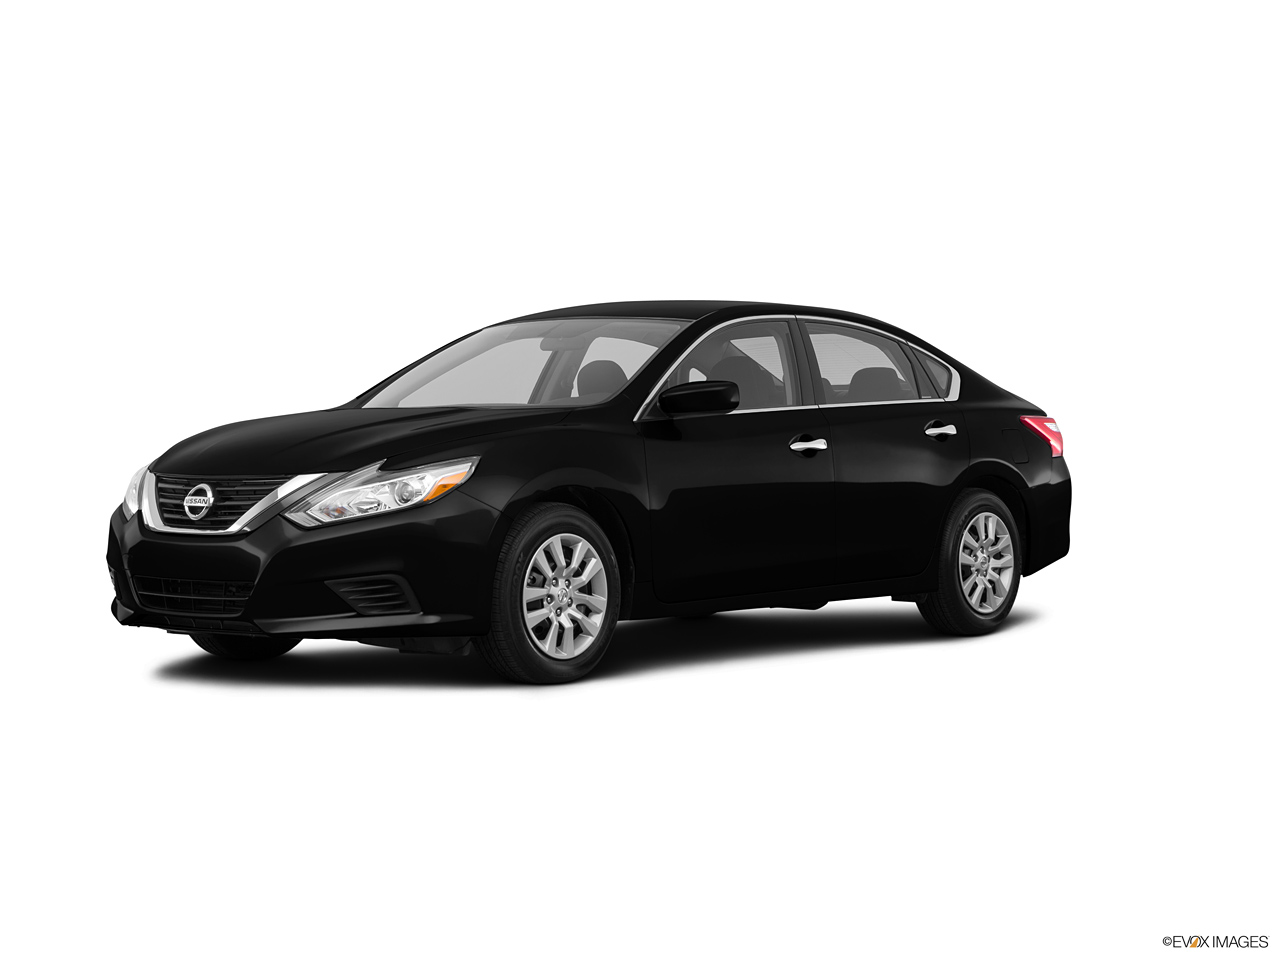 nissan altima 2016 2 5 sl in bahrain new car prices. Black Bedroom Furniture Sets. Home Design Ideas